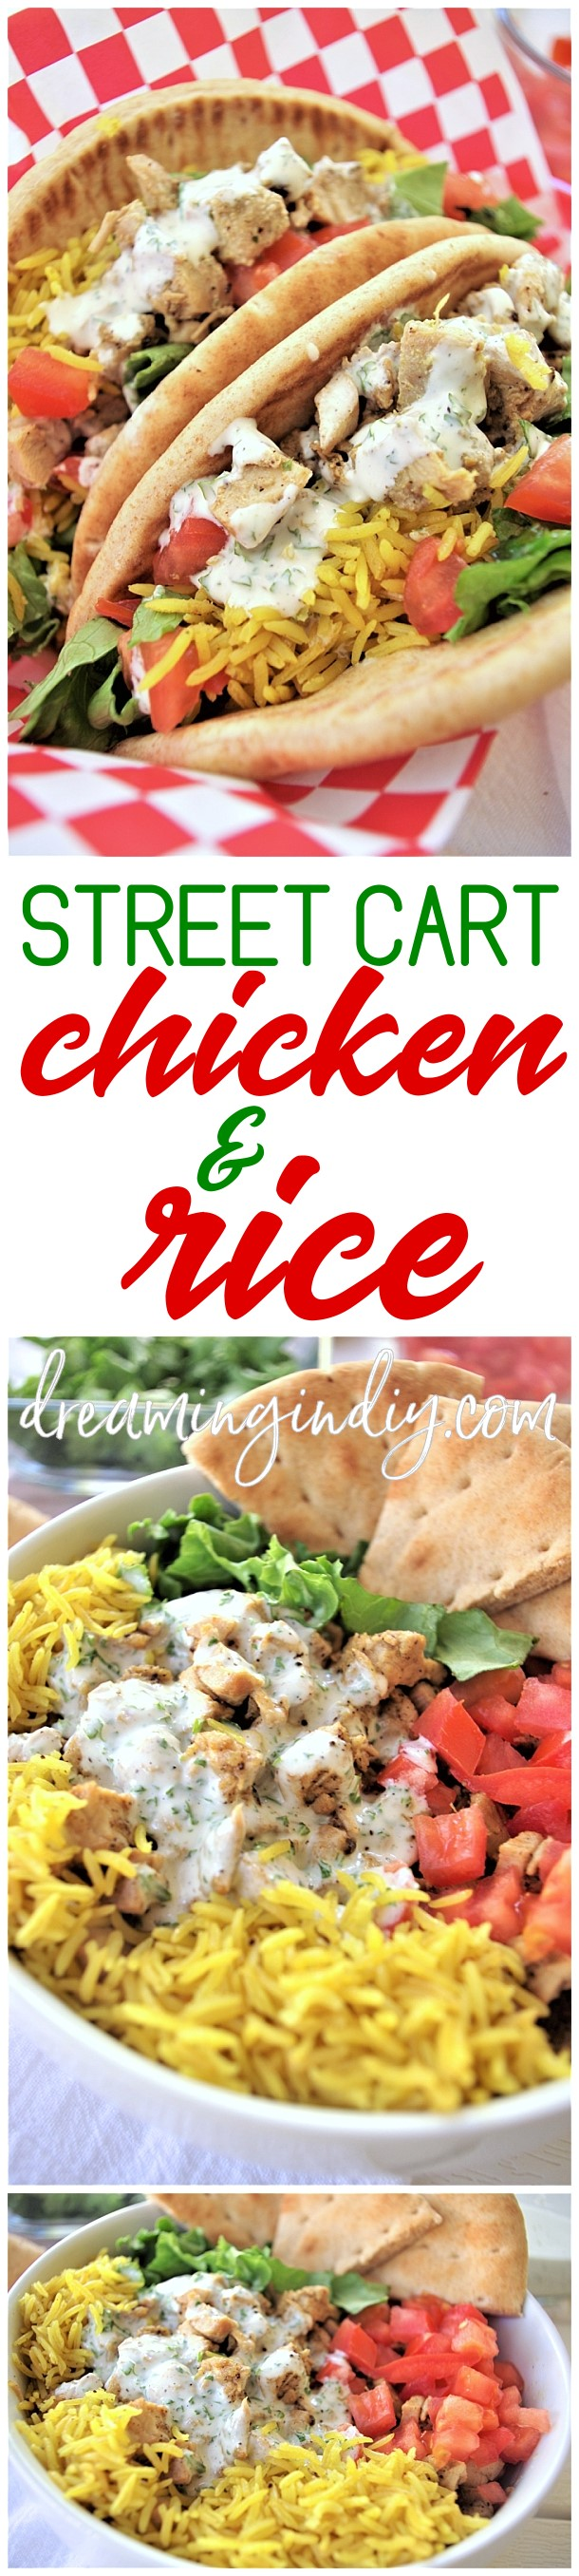 Easy and Delicious Street Cart Mediterranean Chicken and Rice Bowls or Pitas Sandwich Quick and Simple Recipes via Dreaming in DIY #chickenrecipes #popularchickenrecipes #chicken #easychickenrecipes #chickenbreastrecipes #easylunches #easydinners #simplefamilymeals #simplefamilyrecipes #simplerecipes